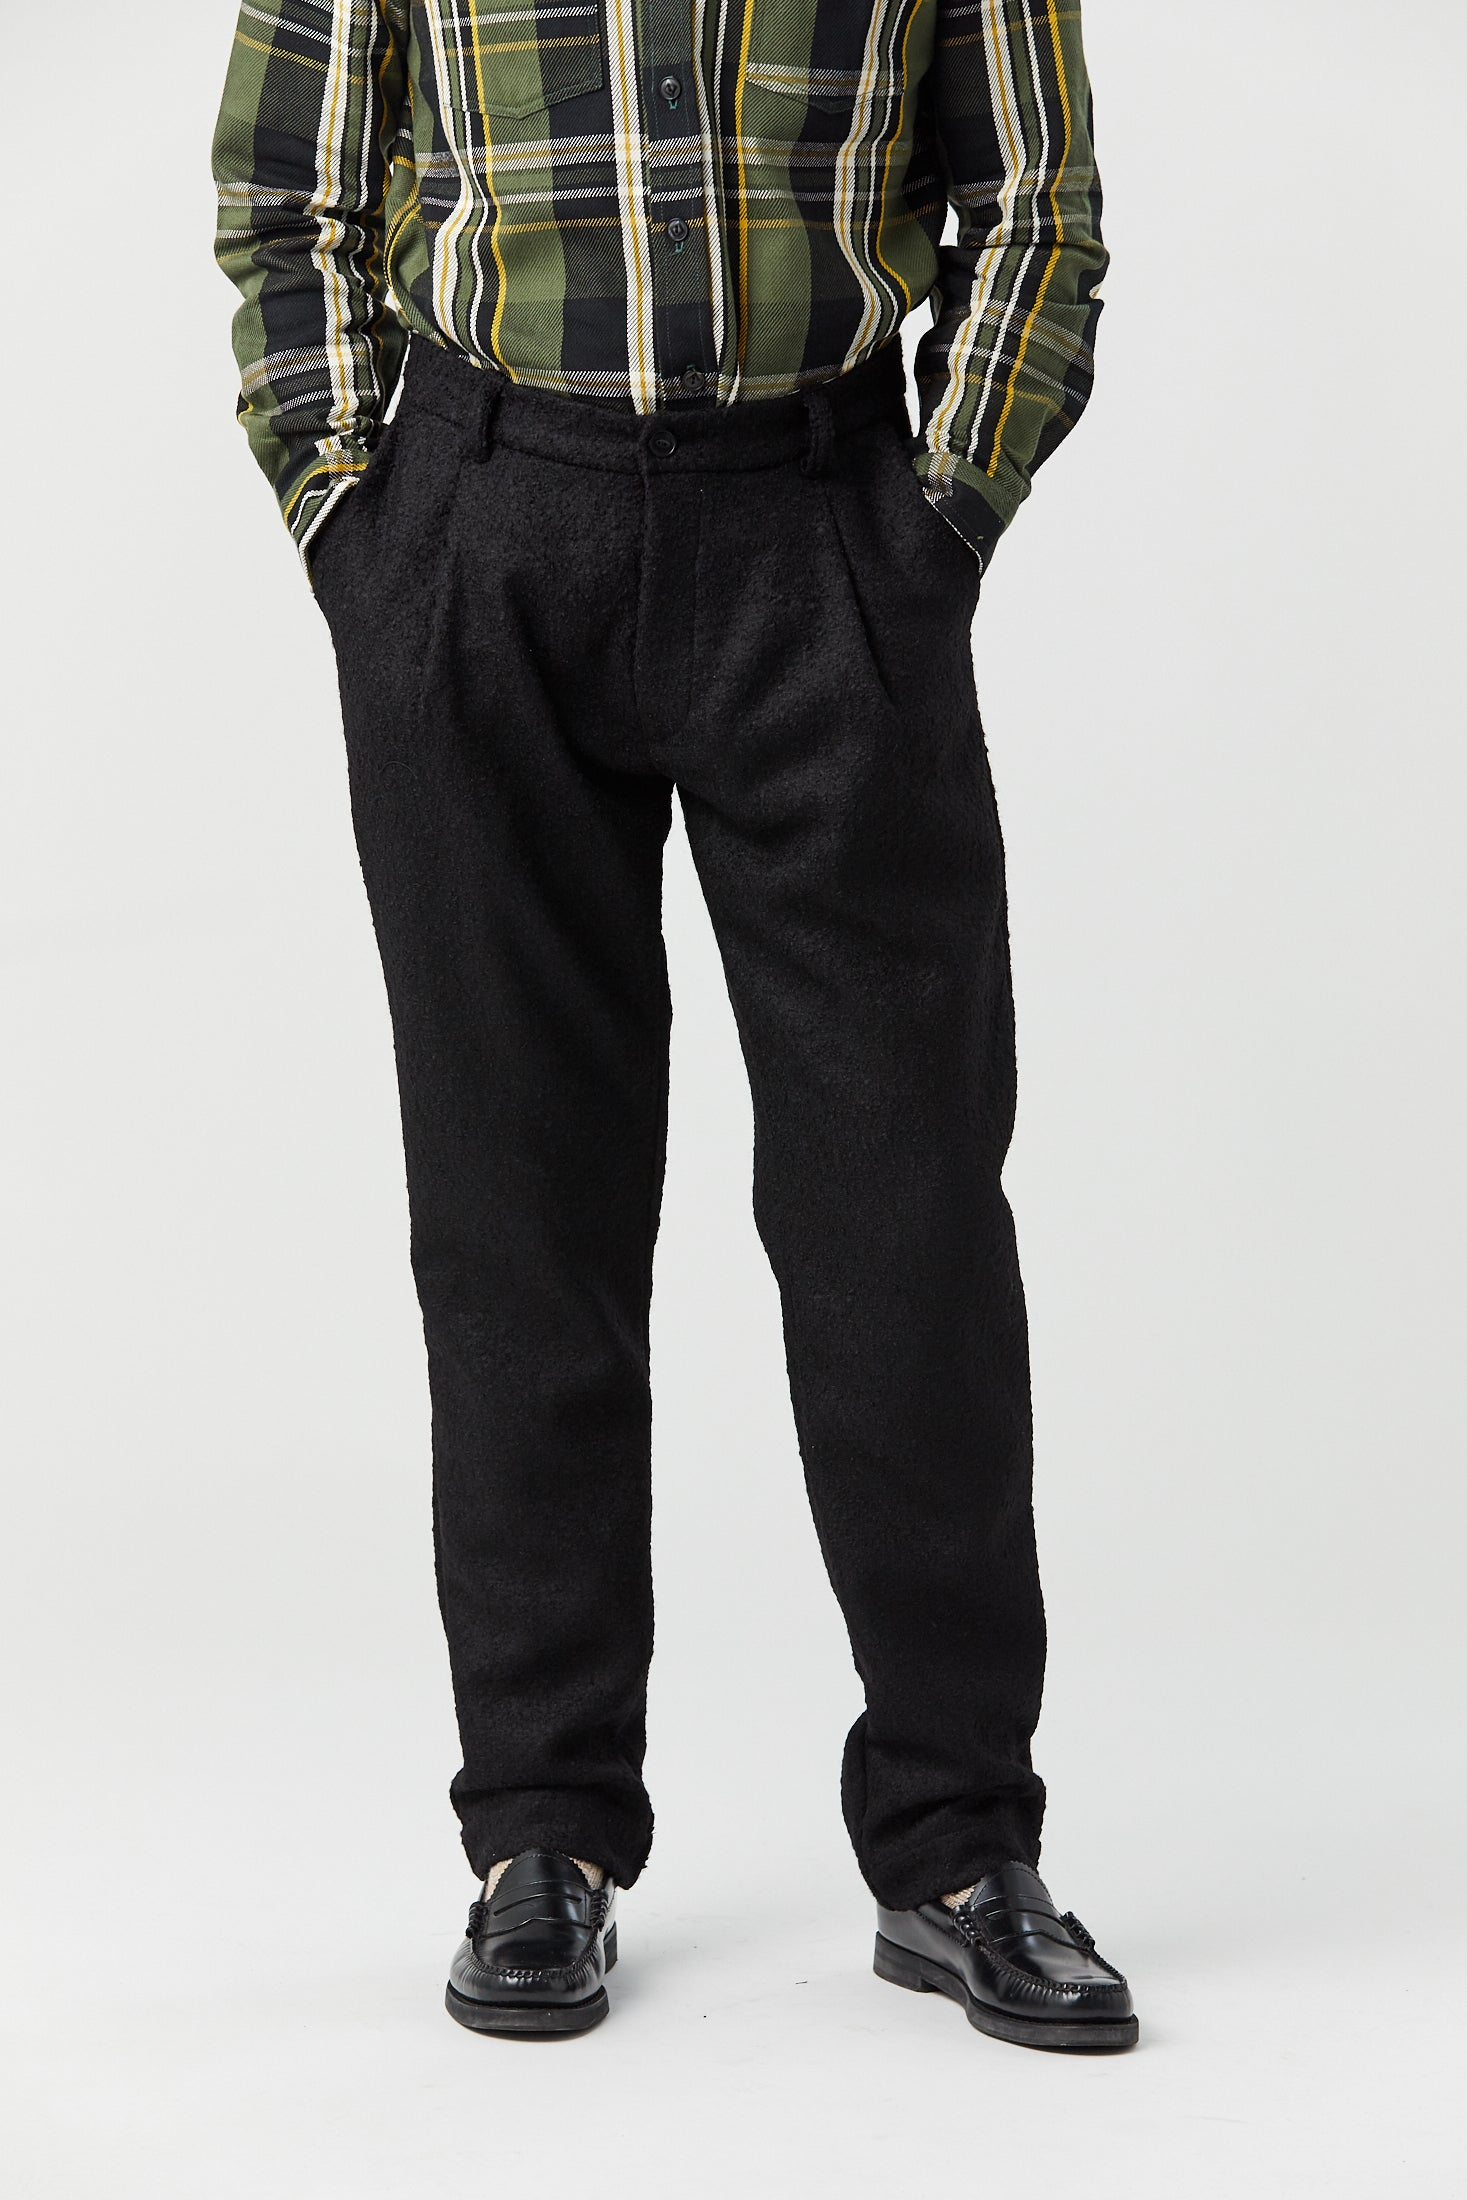 CORKTOWN PLEAT TROUSER IN BLACK BOILED WOOL - Fortune Goods